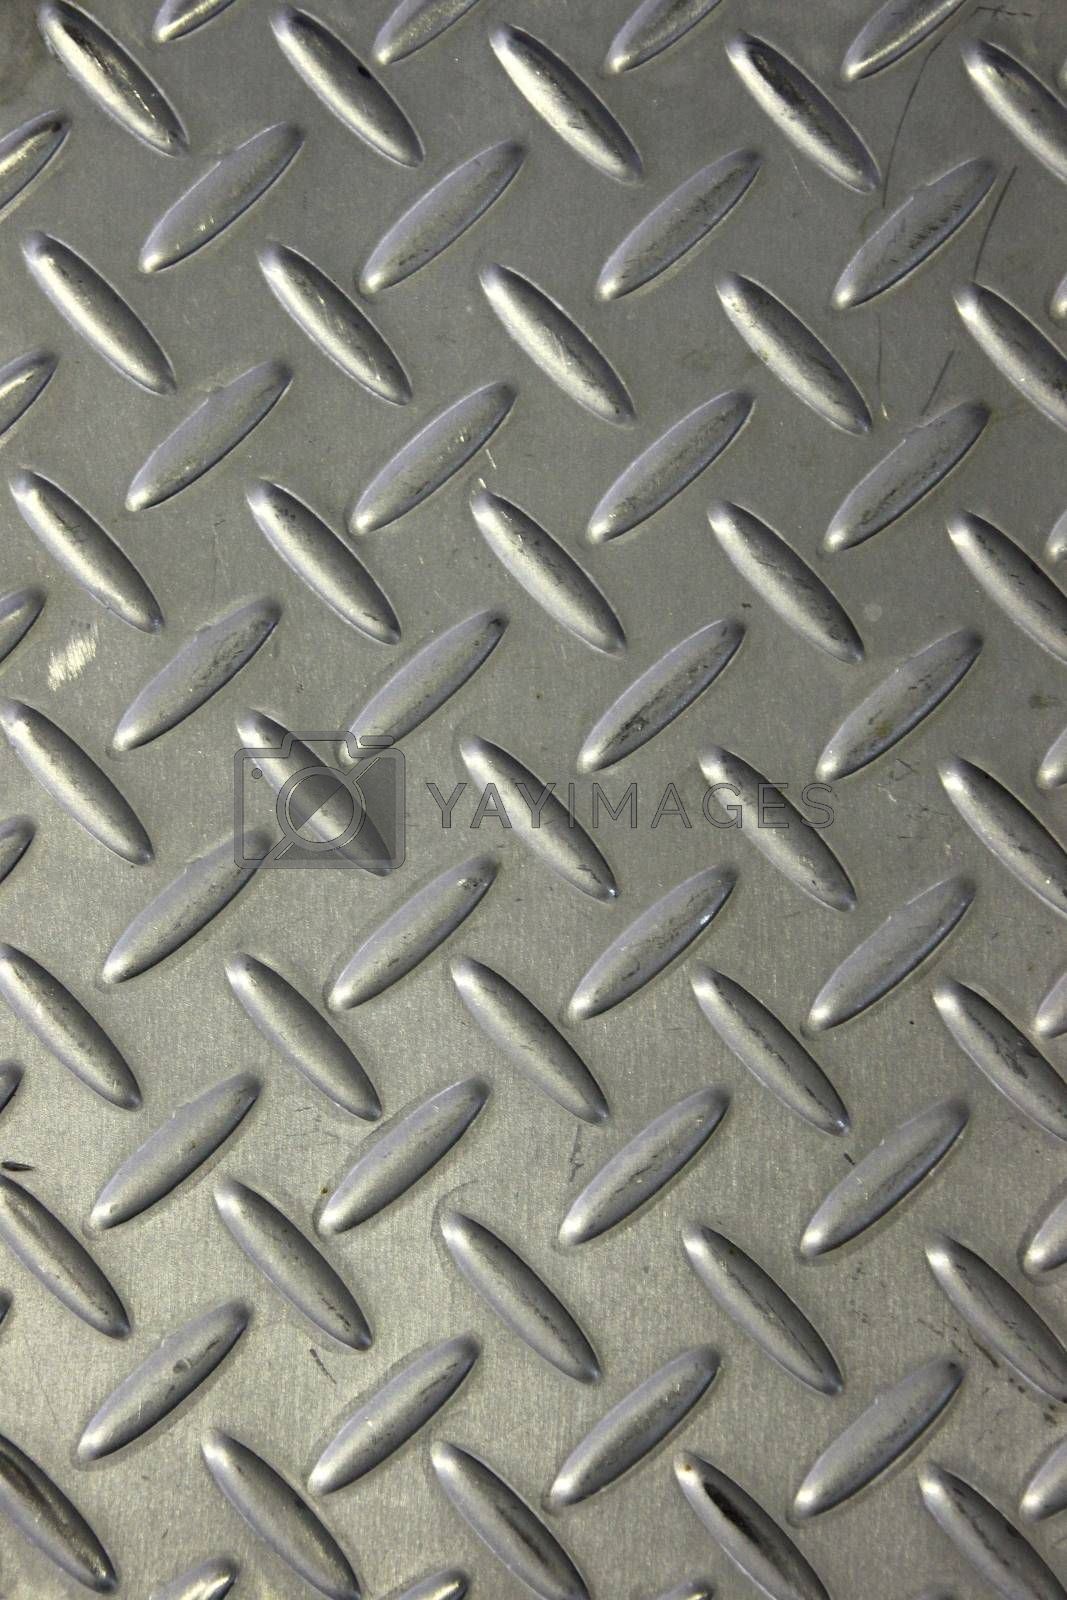 The Closeup Picture Pattern corridor made of Stainless steel.